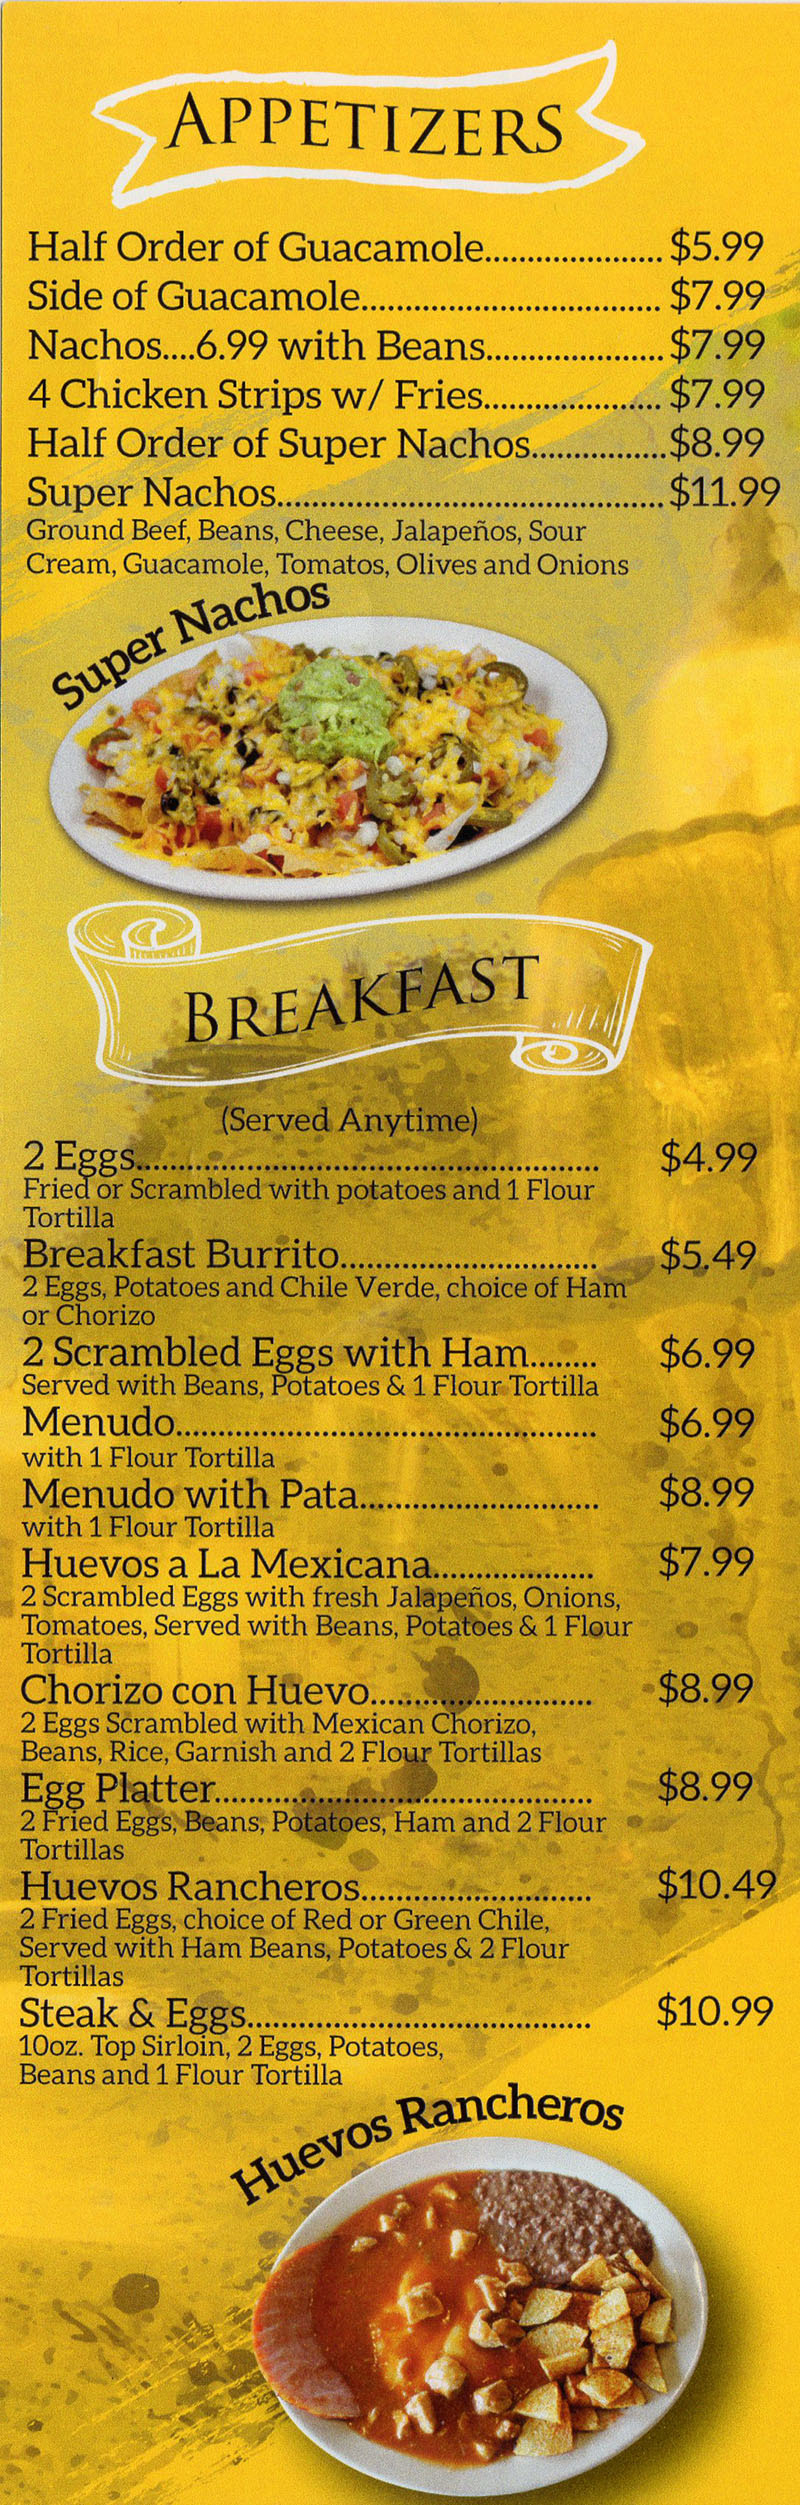 La Fountain menu - appetizers, breakfast